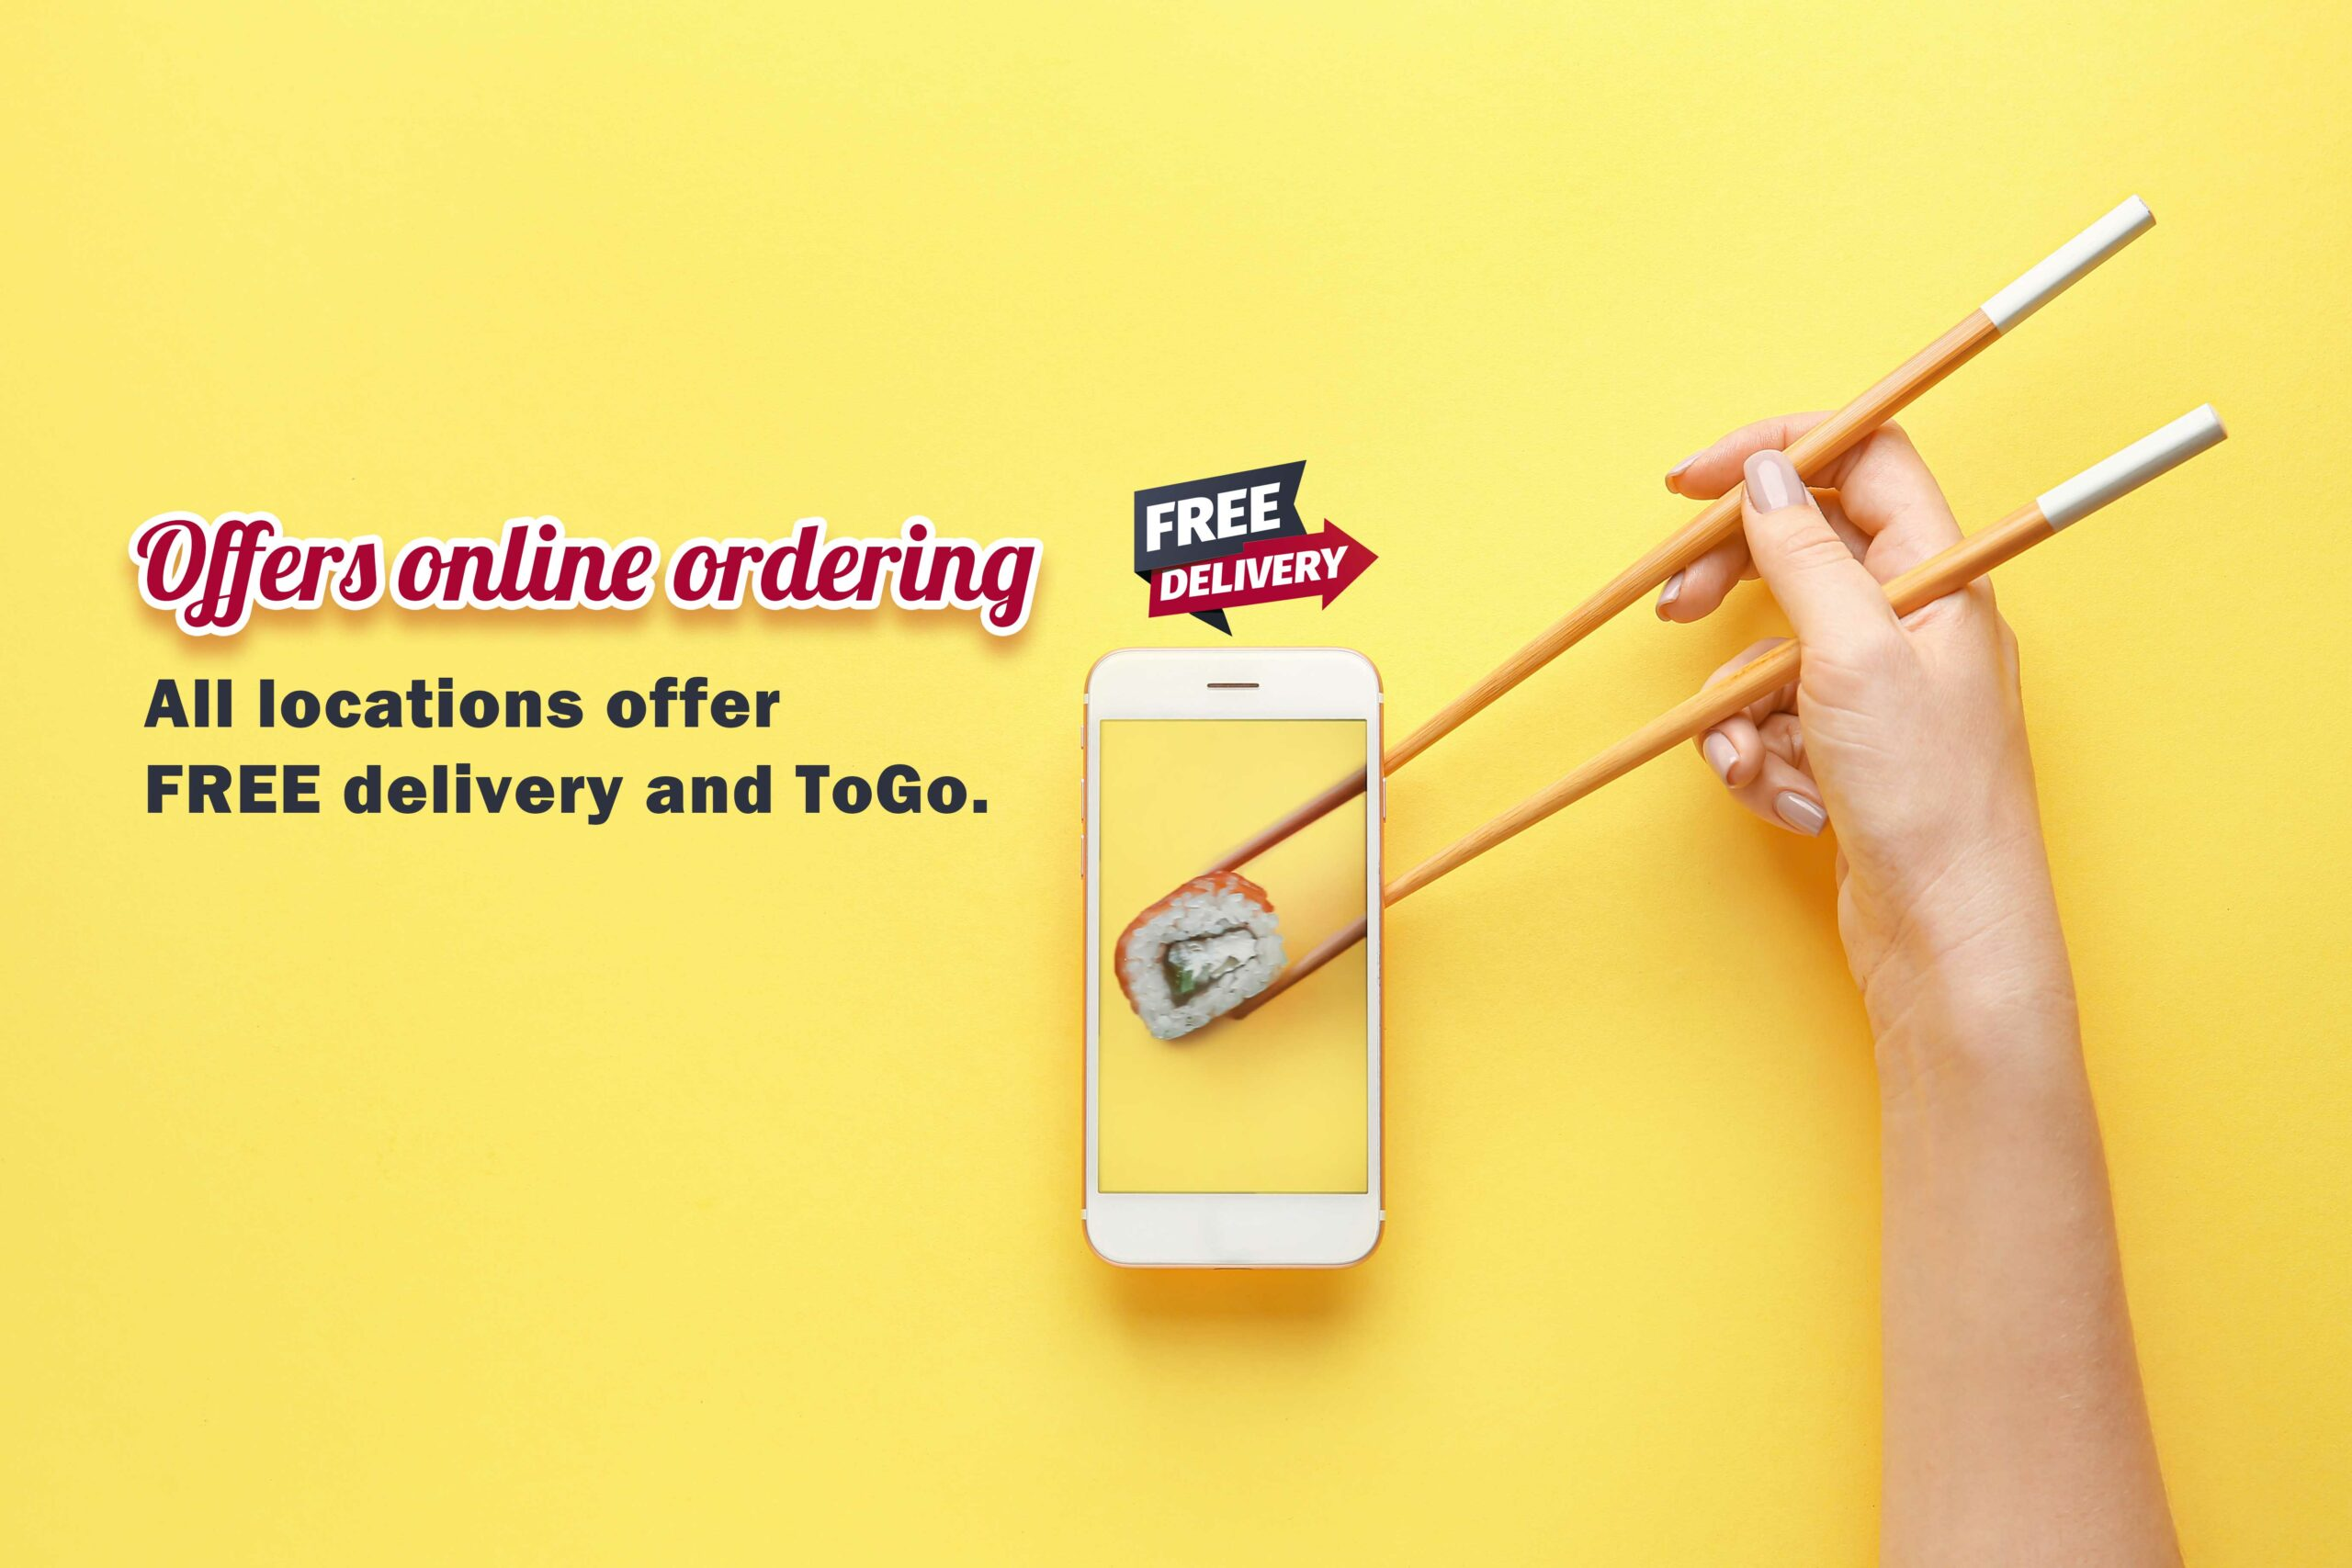 Sushi Zushi offers online ordering! All locations offer FREE delivery and ToGo.